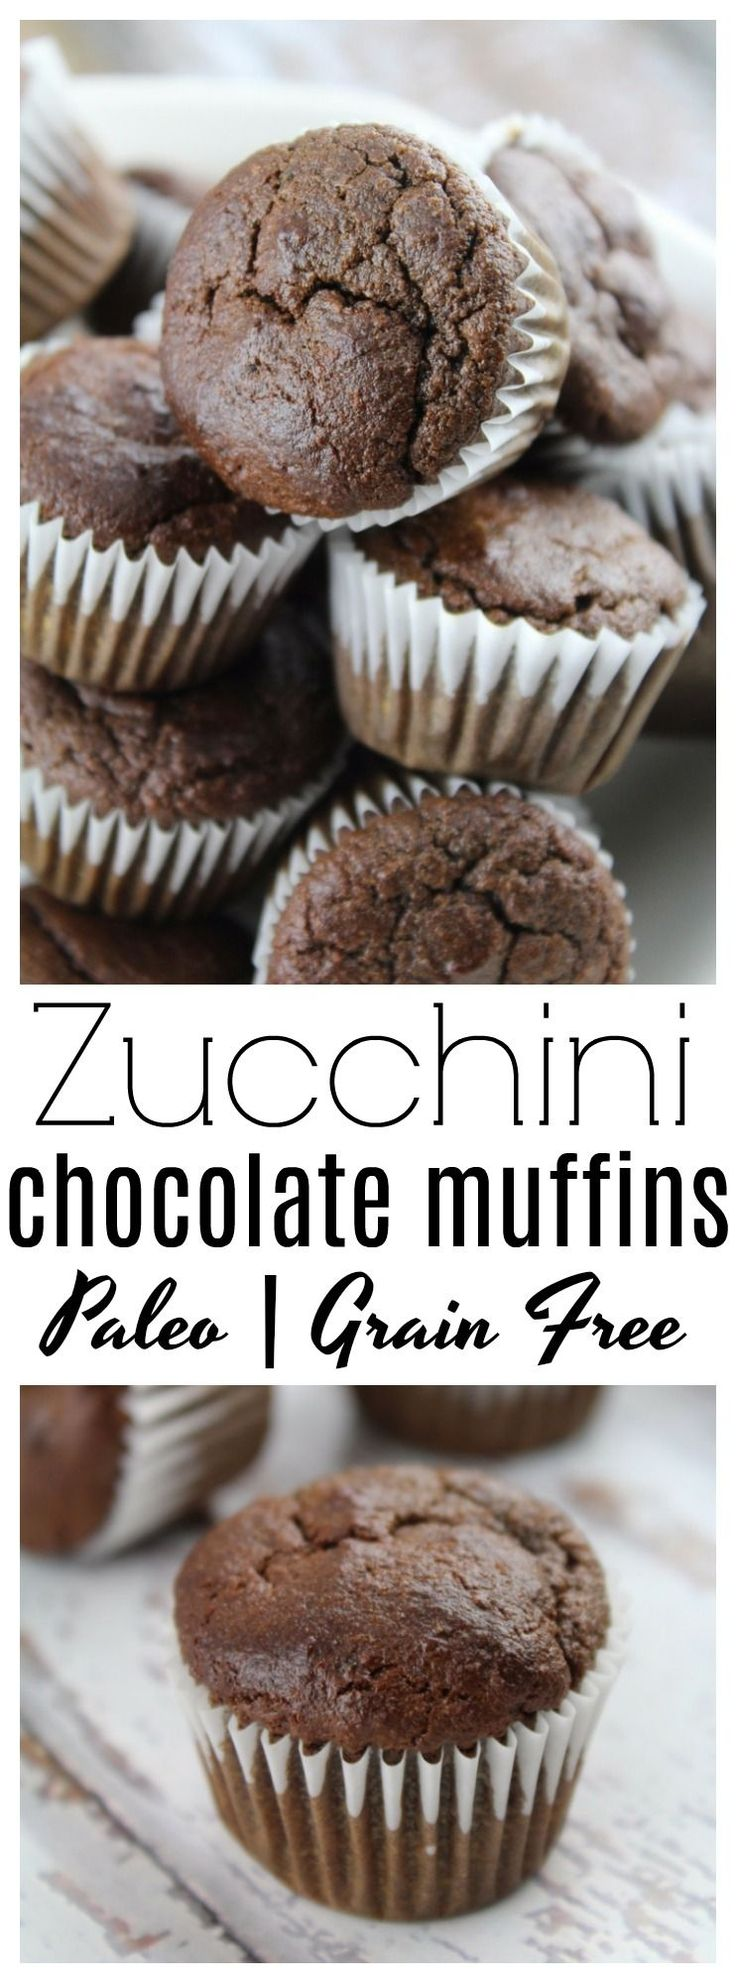 These paleo, grain free chocolate zucchini muffins that make the perfect healthy snack for people of all ages!